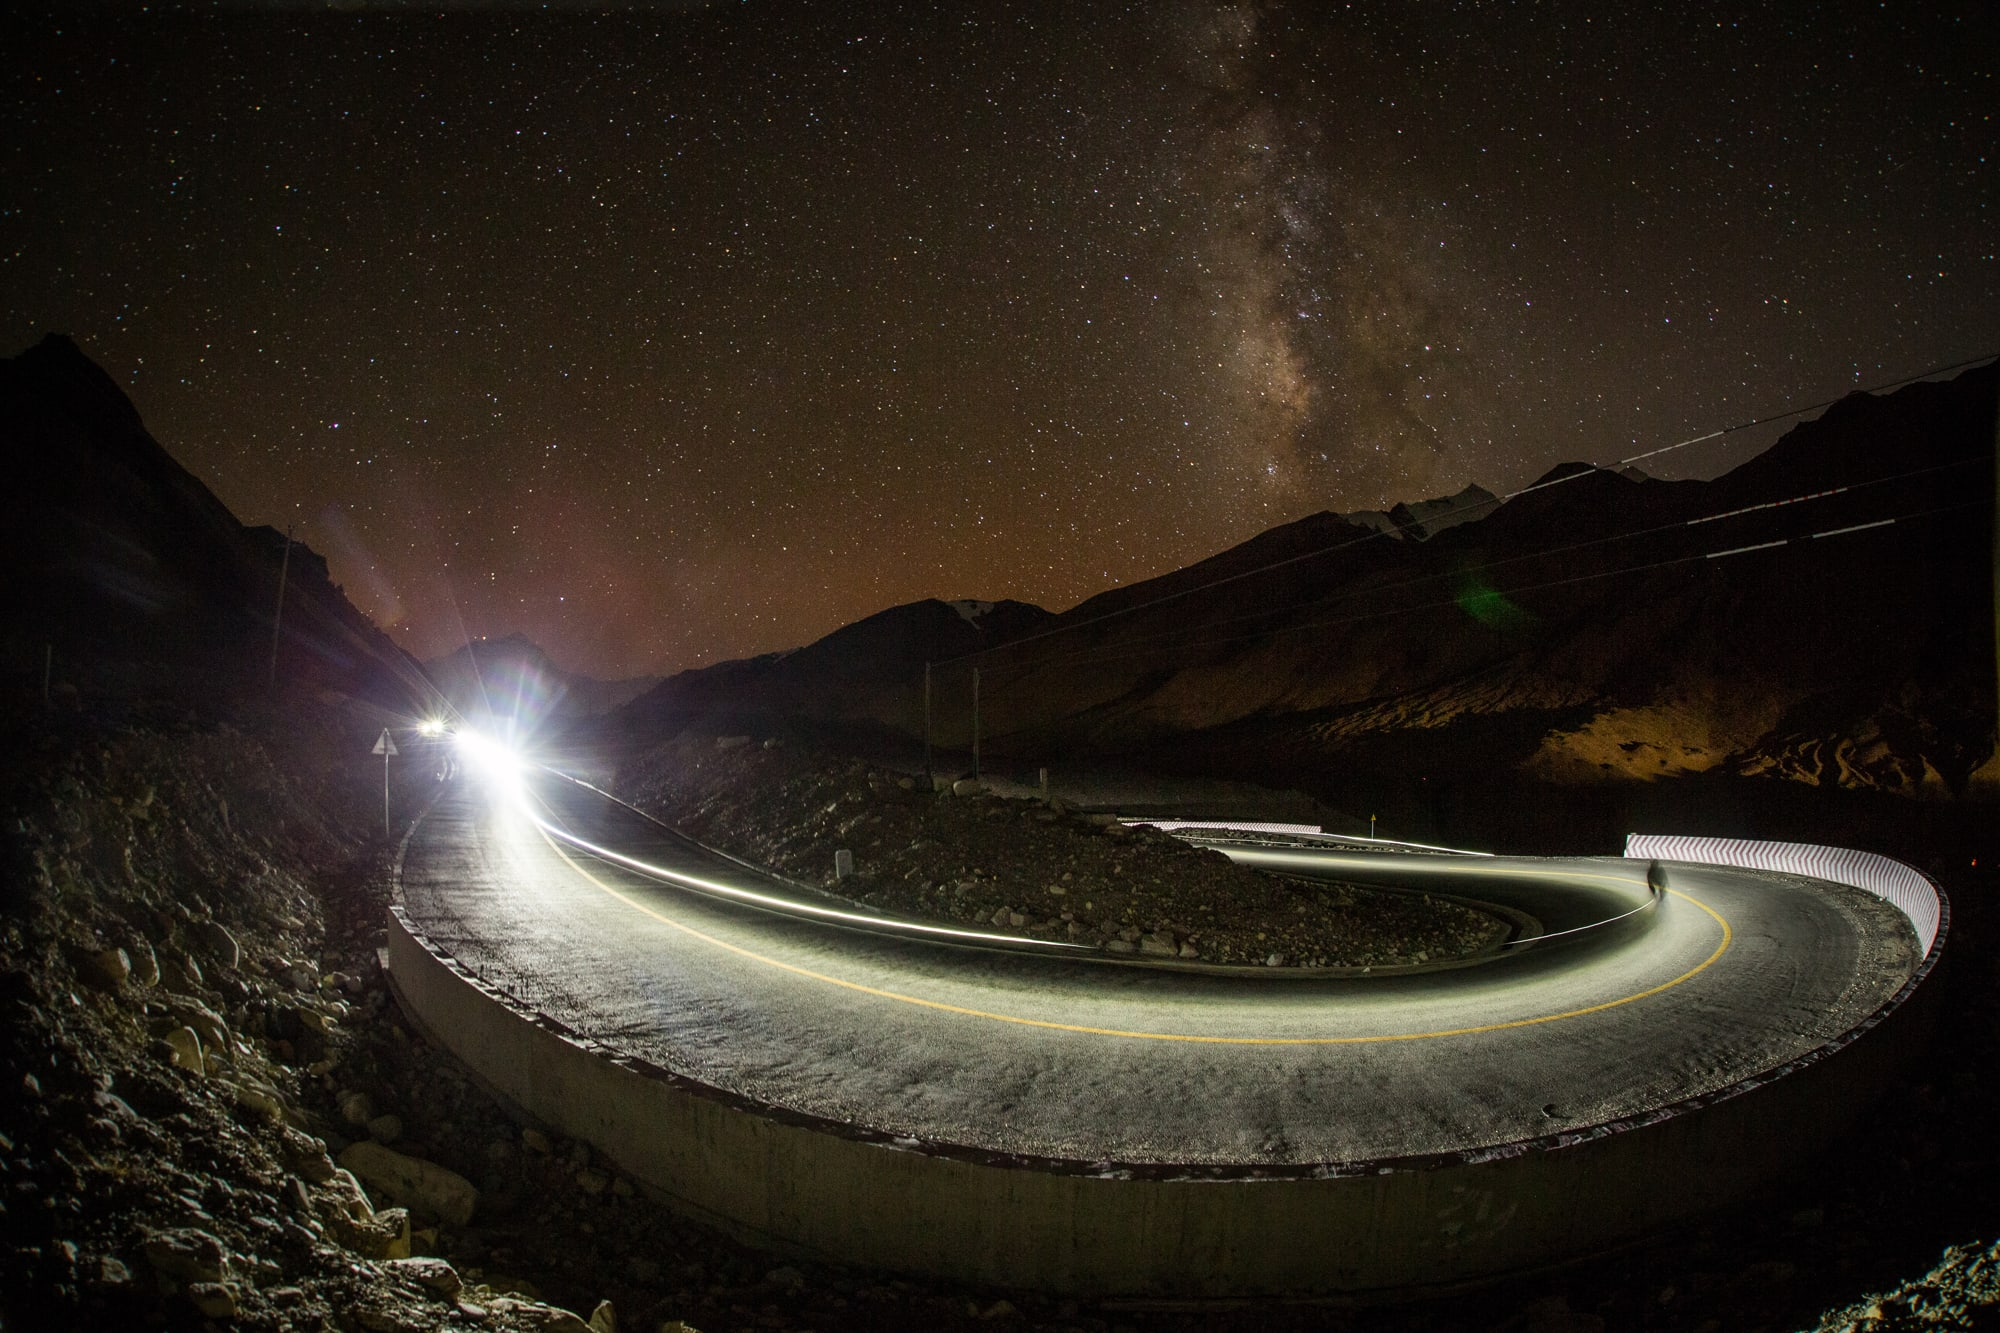 The night sky at the Tibetan Base Camp is something I'll never forget.